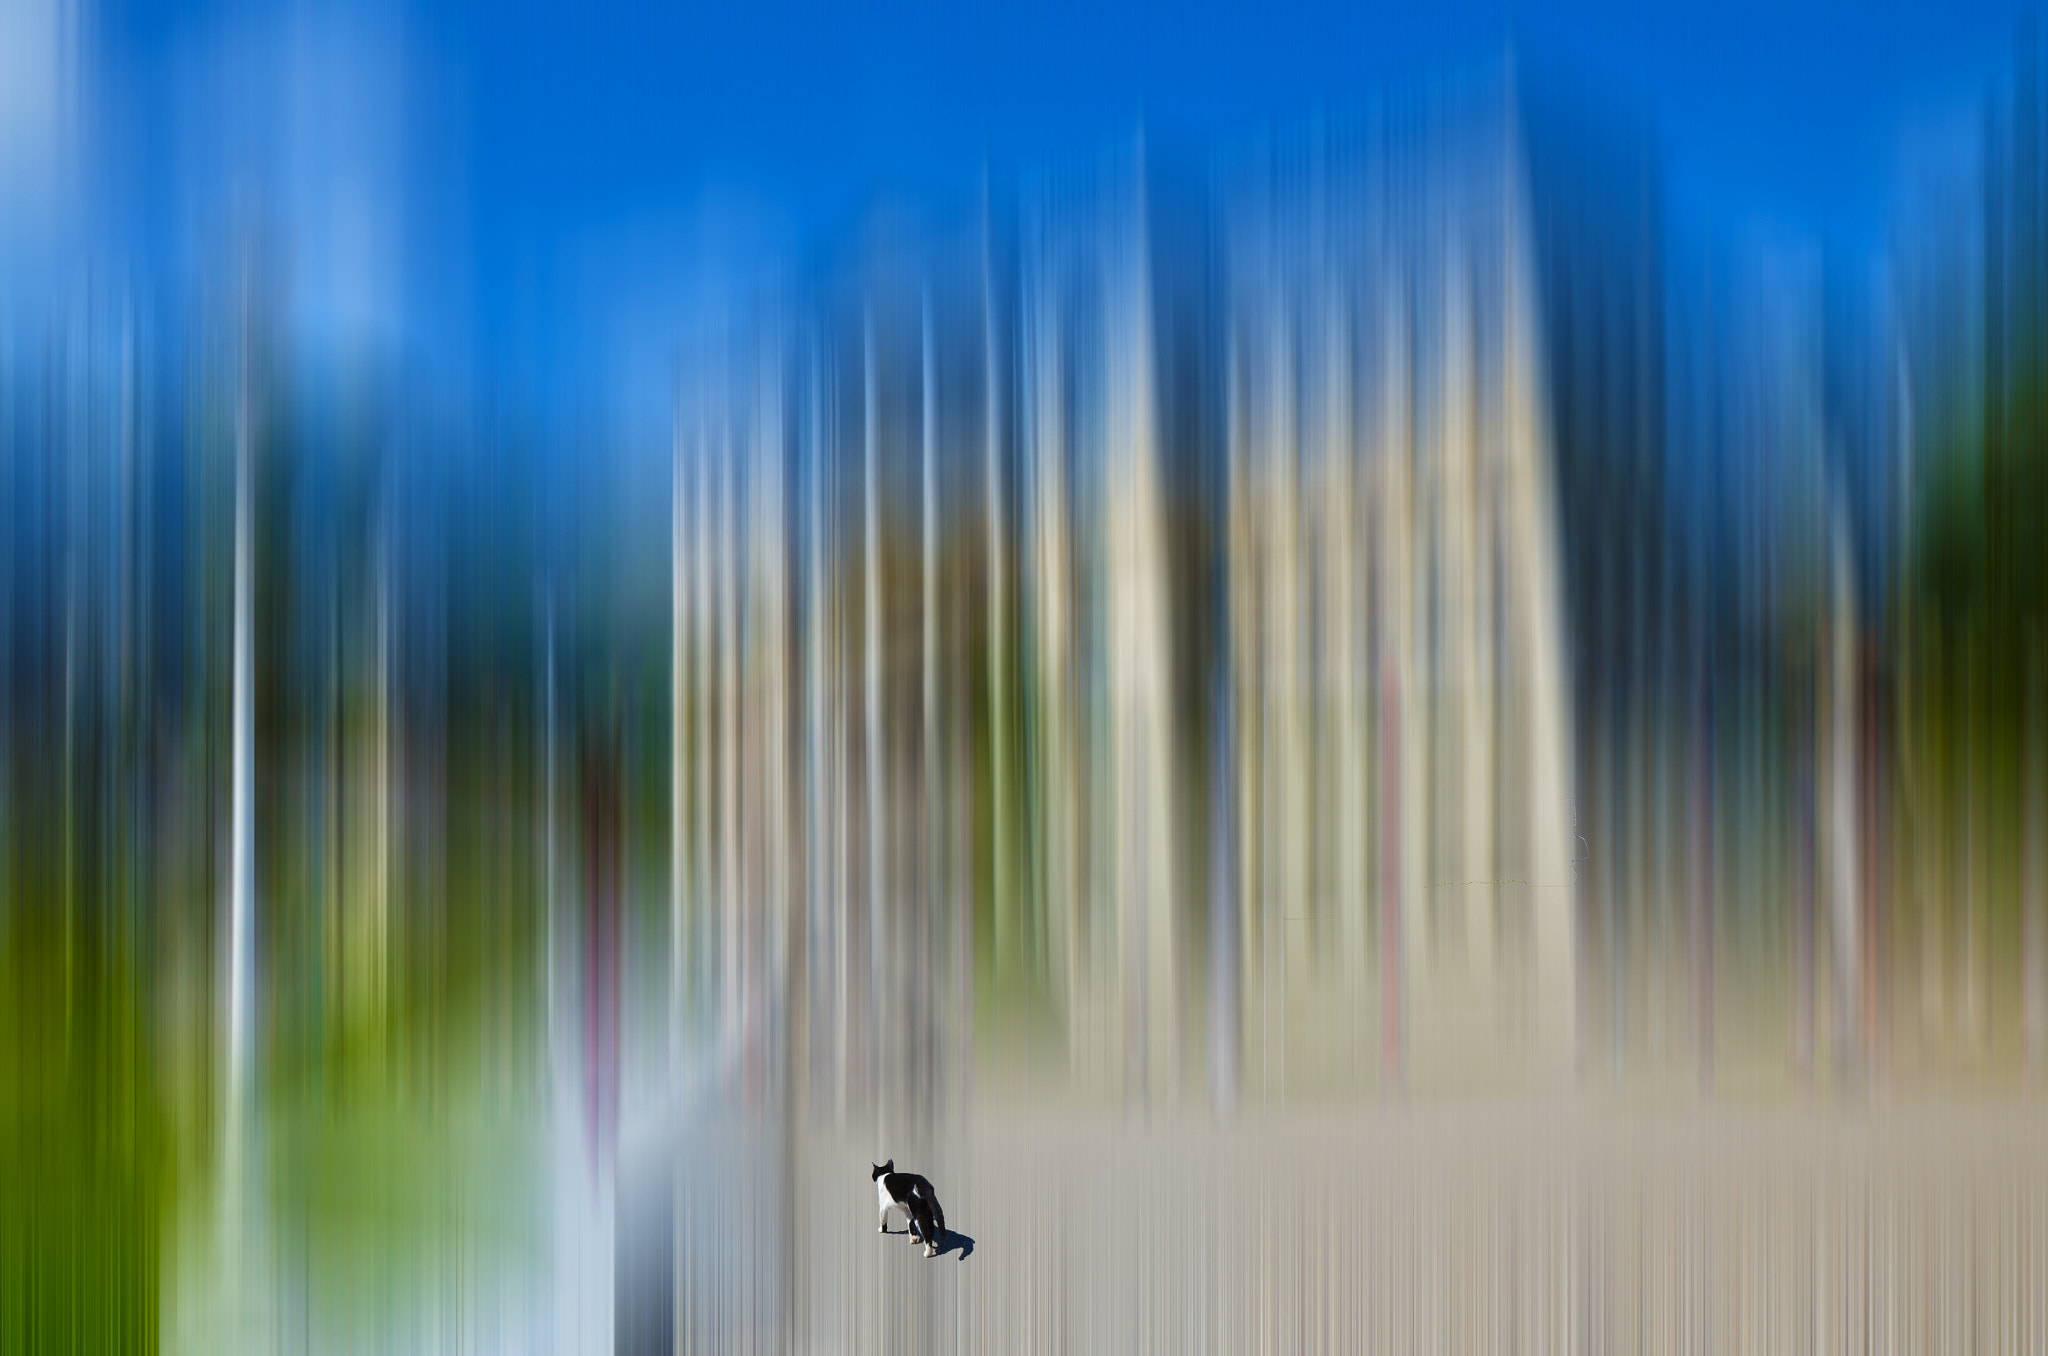 Photograph lonely cat in a town by Chartchai Srisombut on 500px